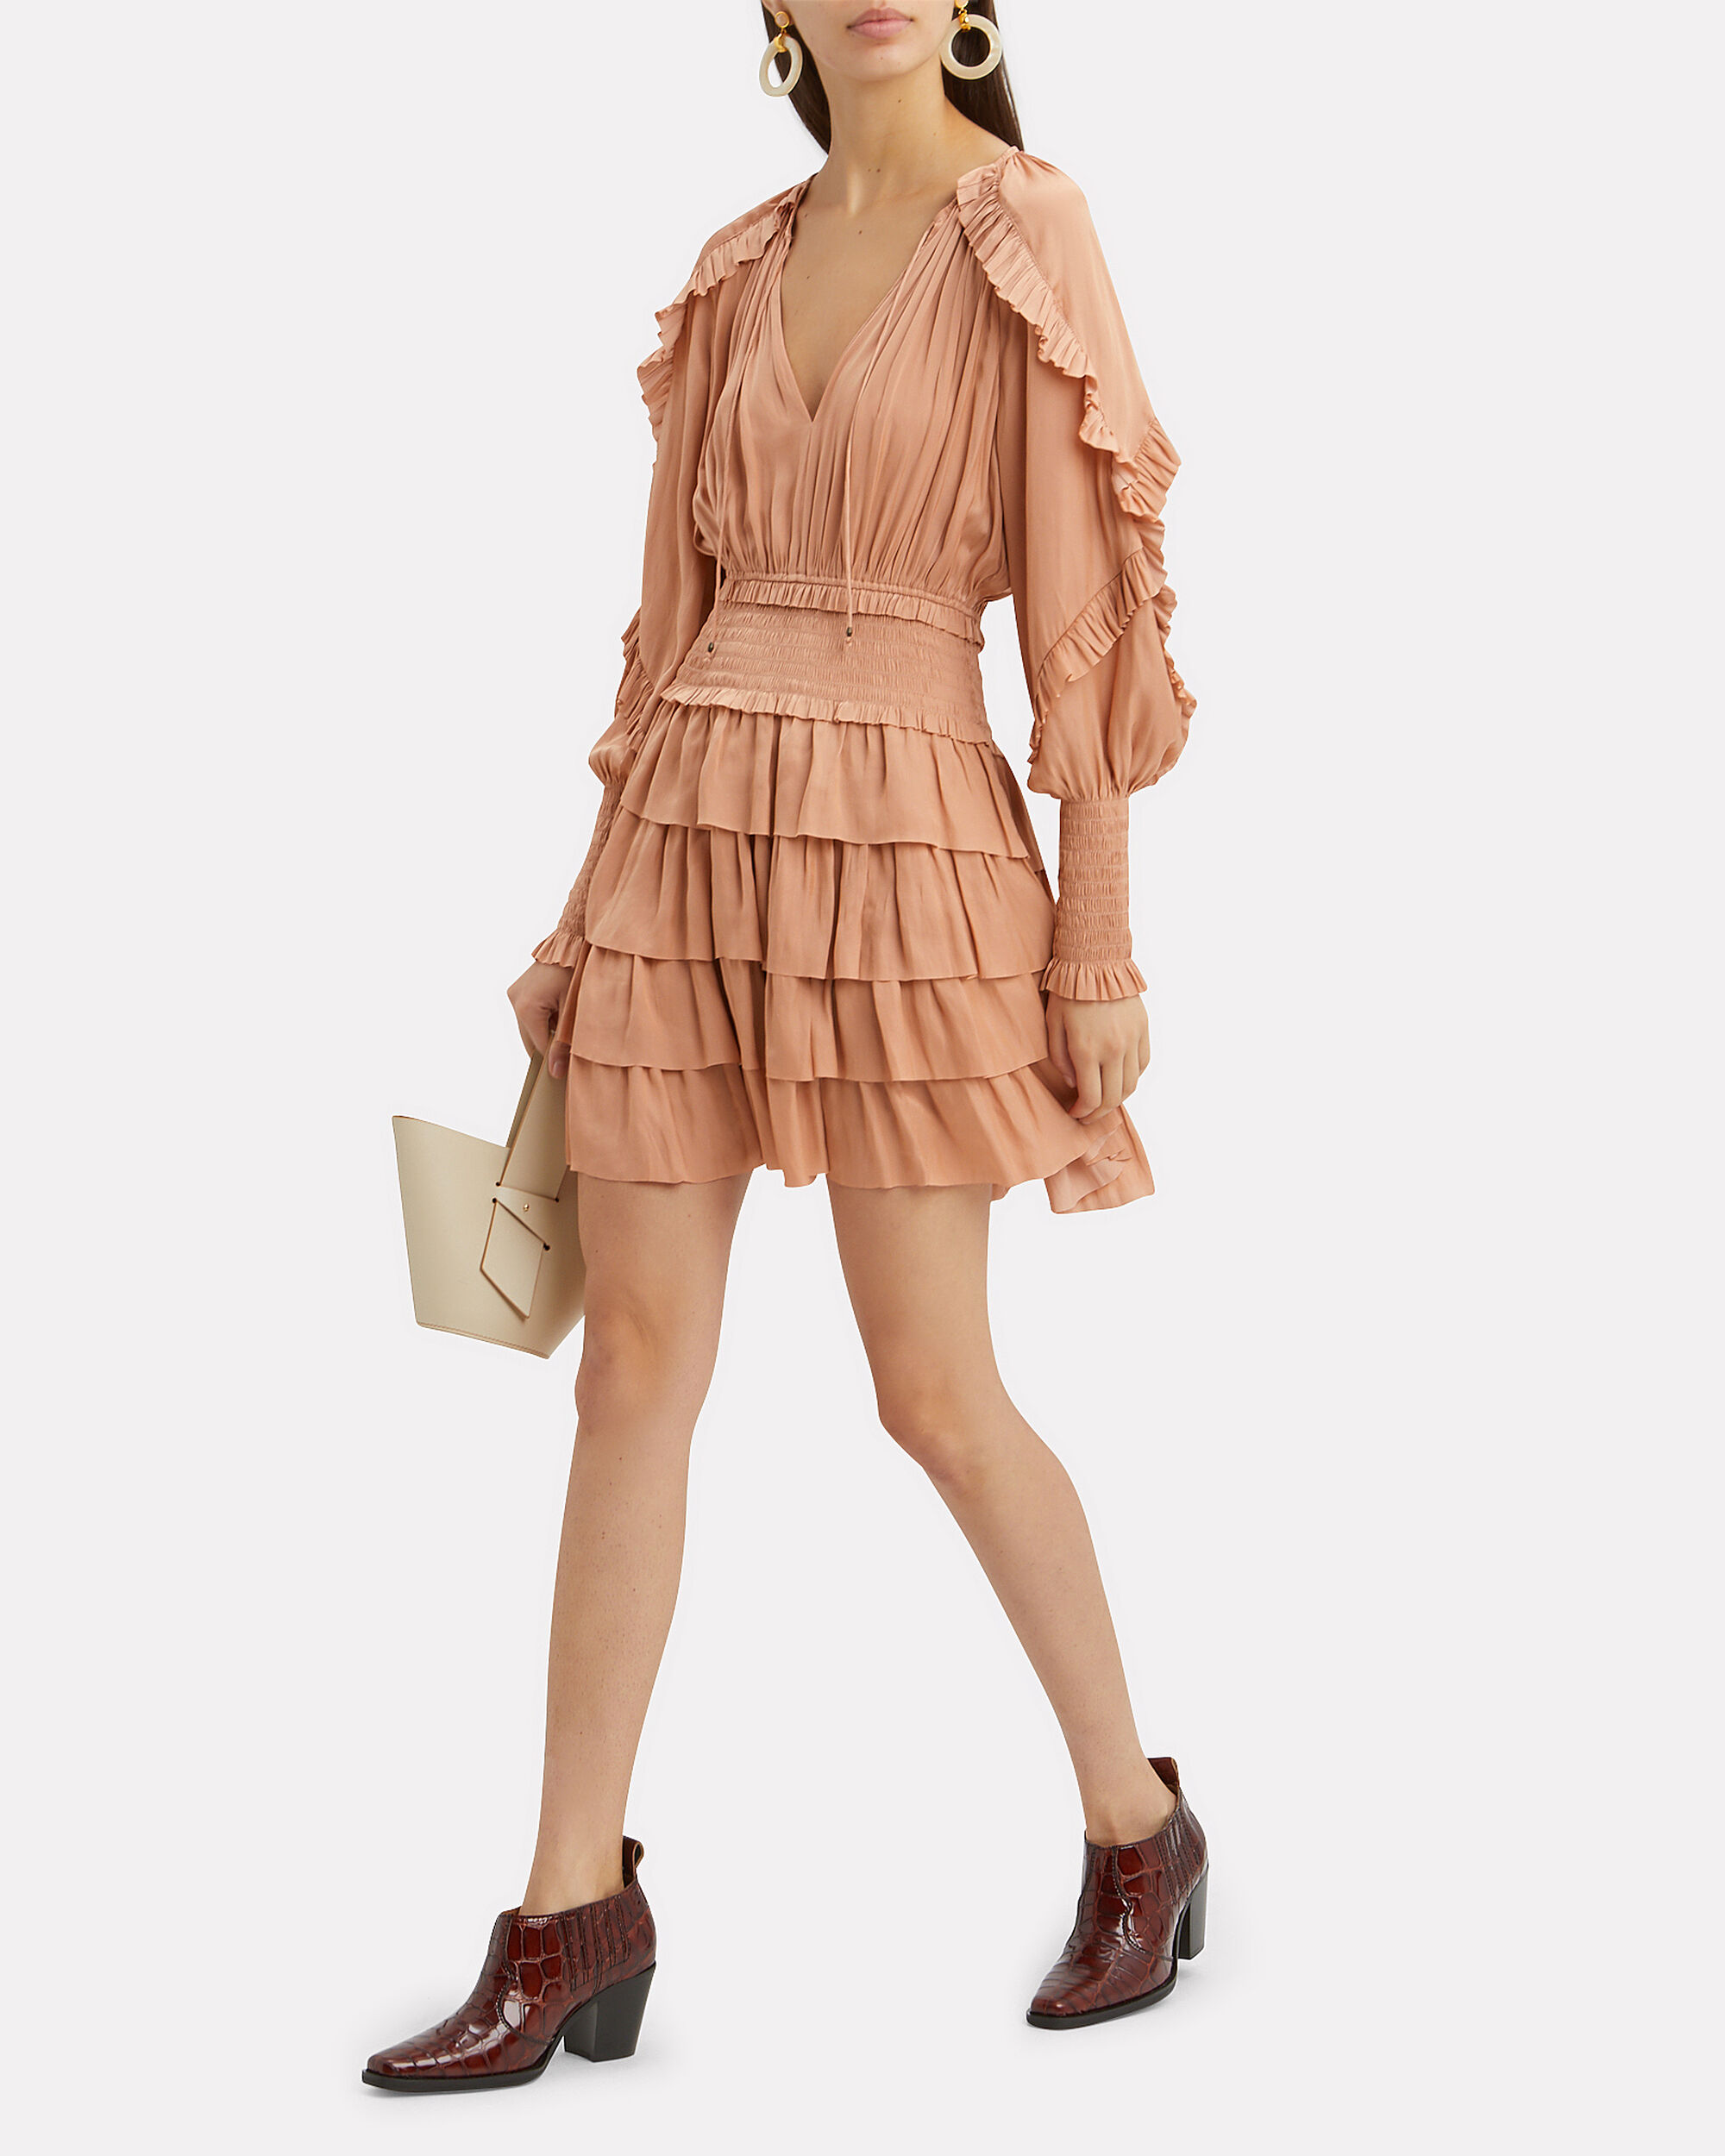 Soraya Dress, BEIGE, hi-res